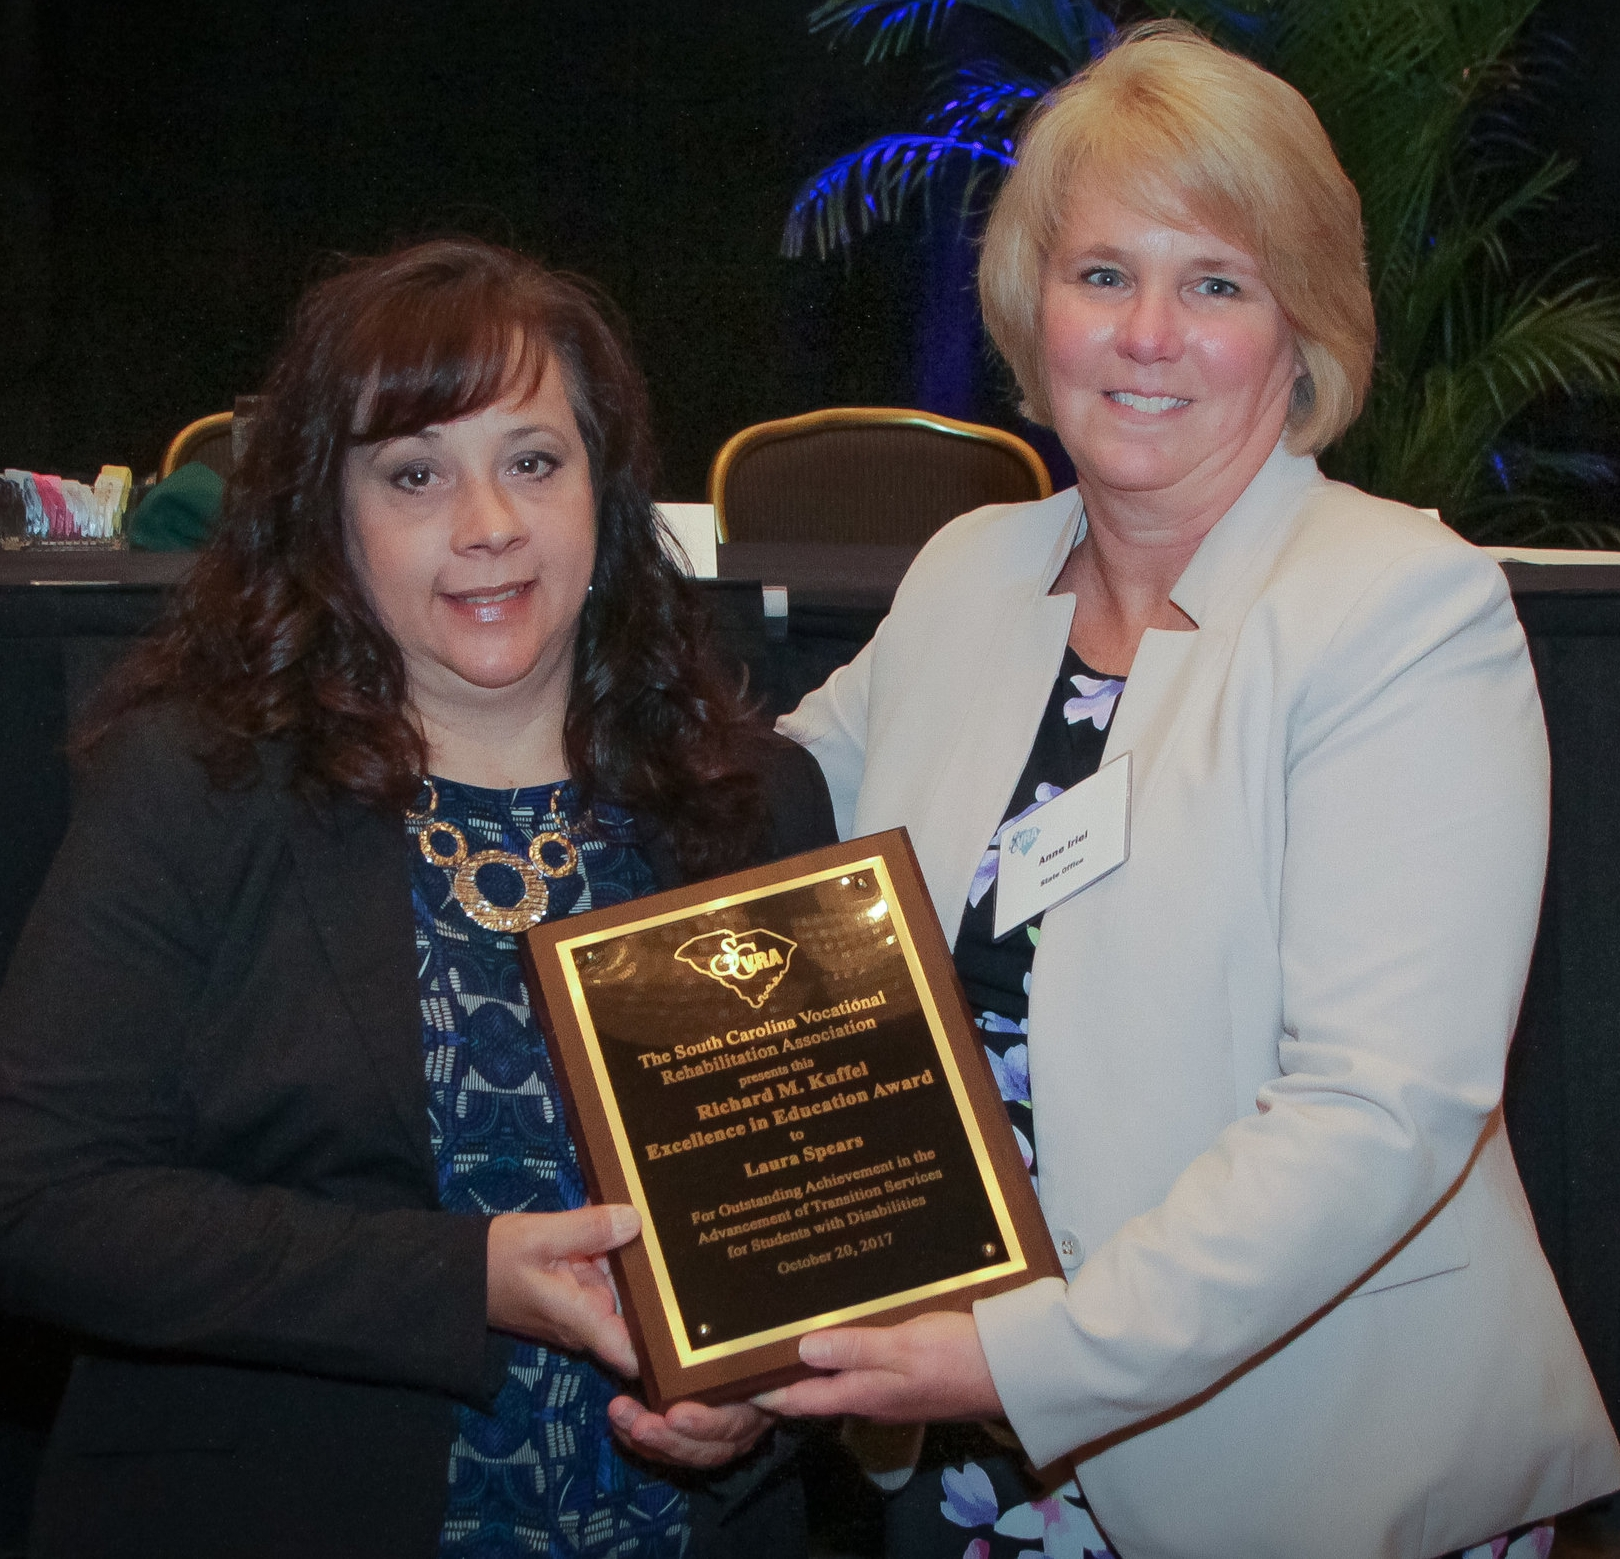 Laura Spears (left), VR Transition Services Coordinator, receives the Richard M. Kuffel Excellence in Education Award from Anne Iriel, VR Assistant Commissioner.